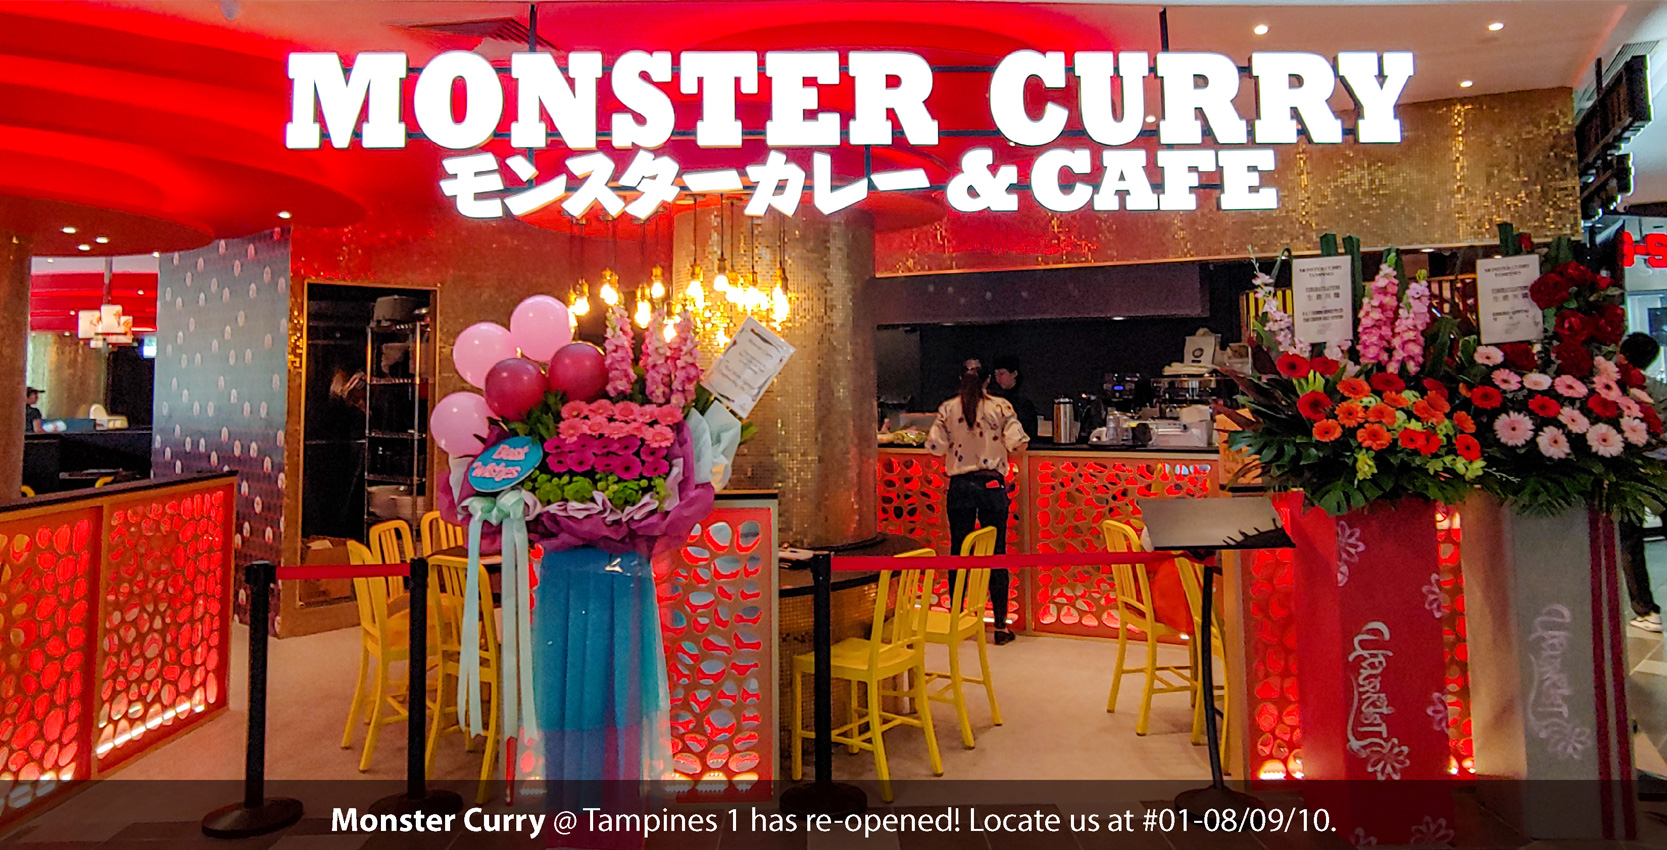 Monster Curry @ Tampines